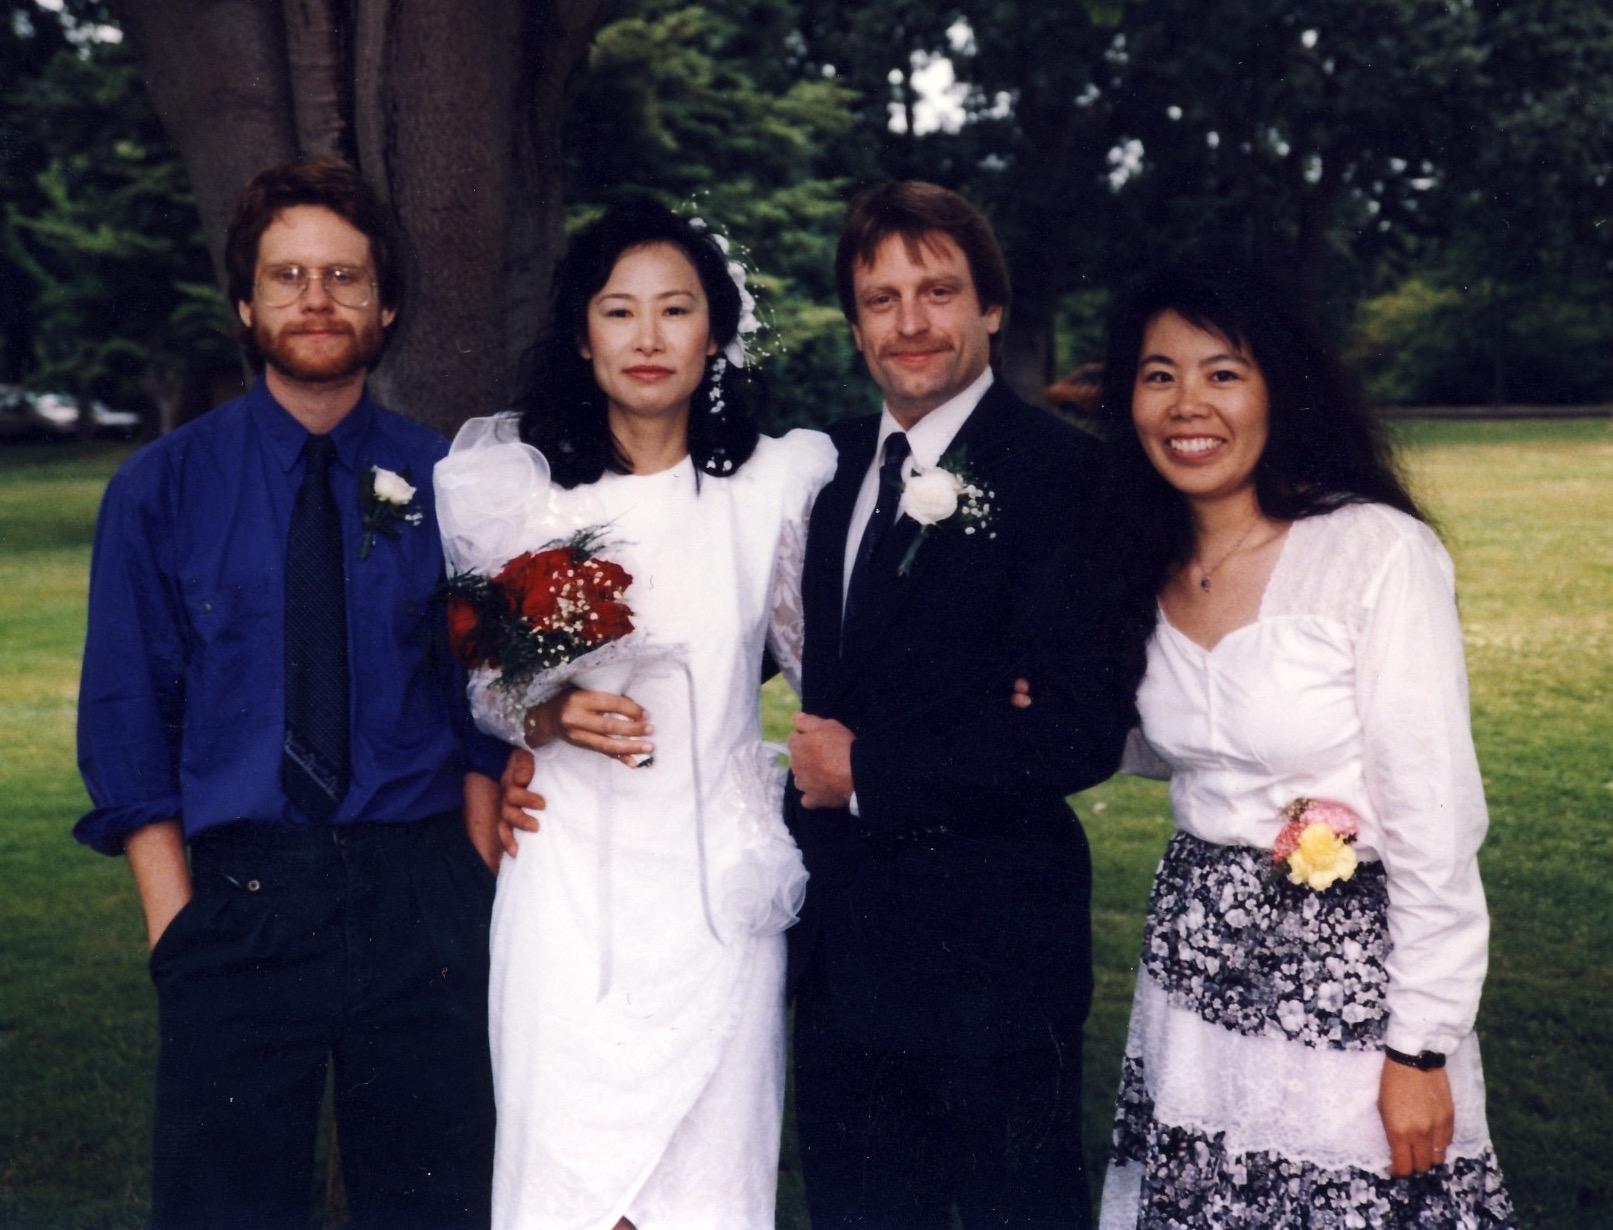 In Beacon Hill Park, Victoria, at my brother Allan's wedding to Sin-lin — who is from Mauritius, studied in Paris, and got to know my brother through Ruby.